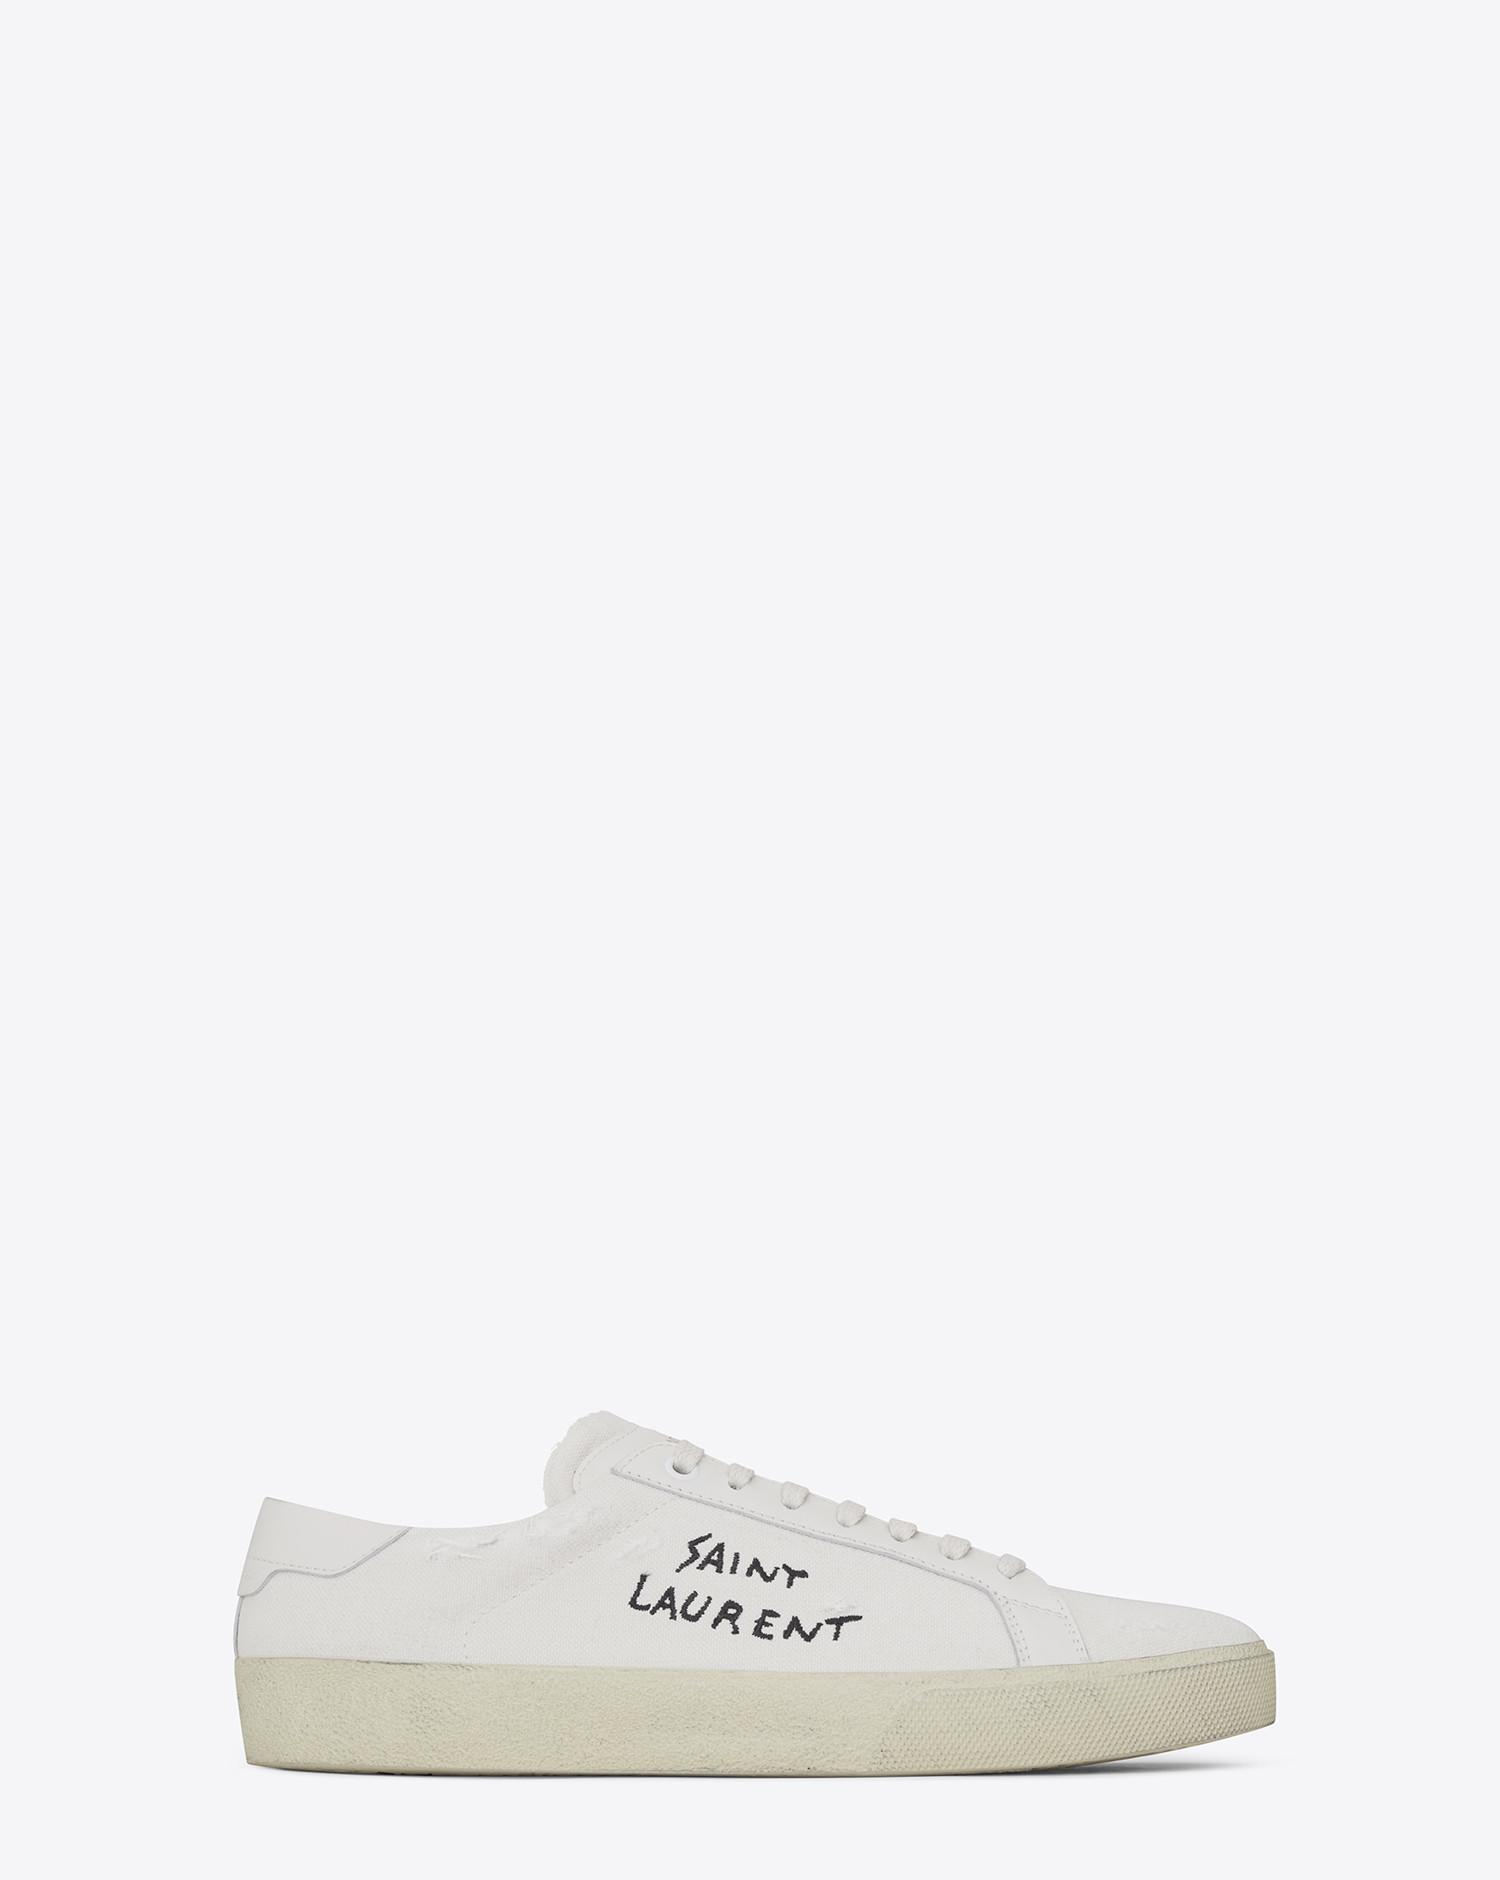 Sl/06 Court Classic Distressed Leather-trimmed Embroidered Canvas Sneakers Saint Laurent Sale Cheap Price xbkSfzZH